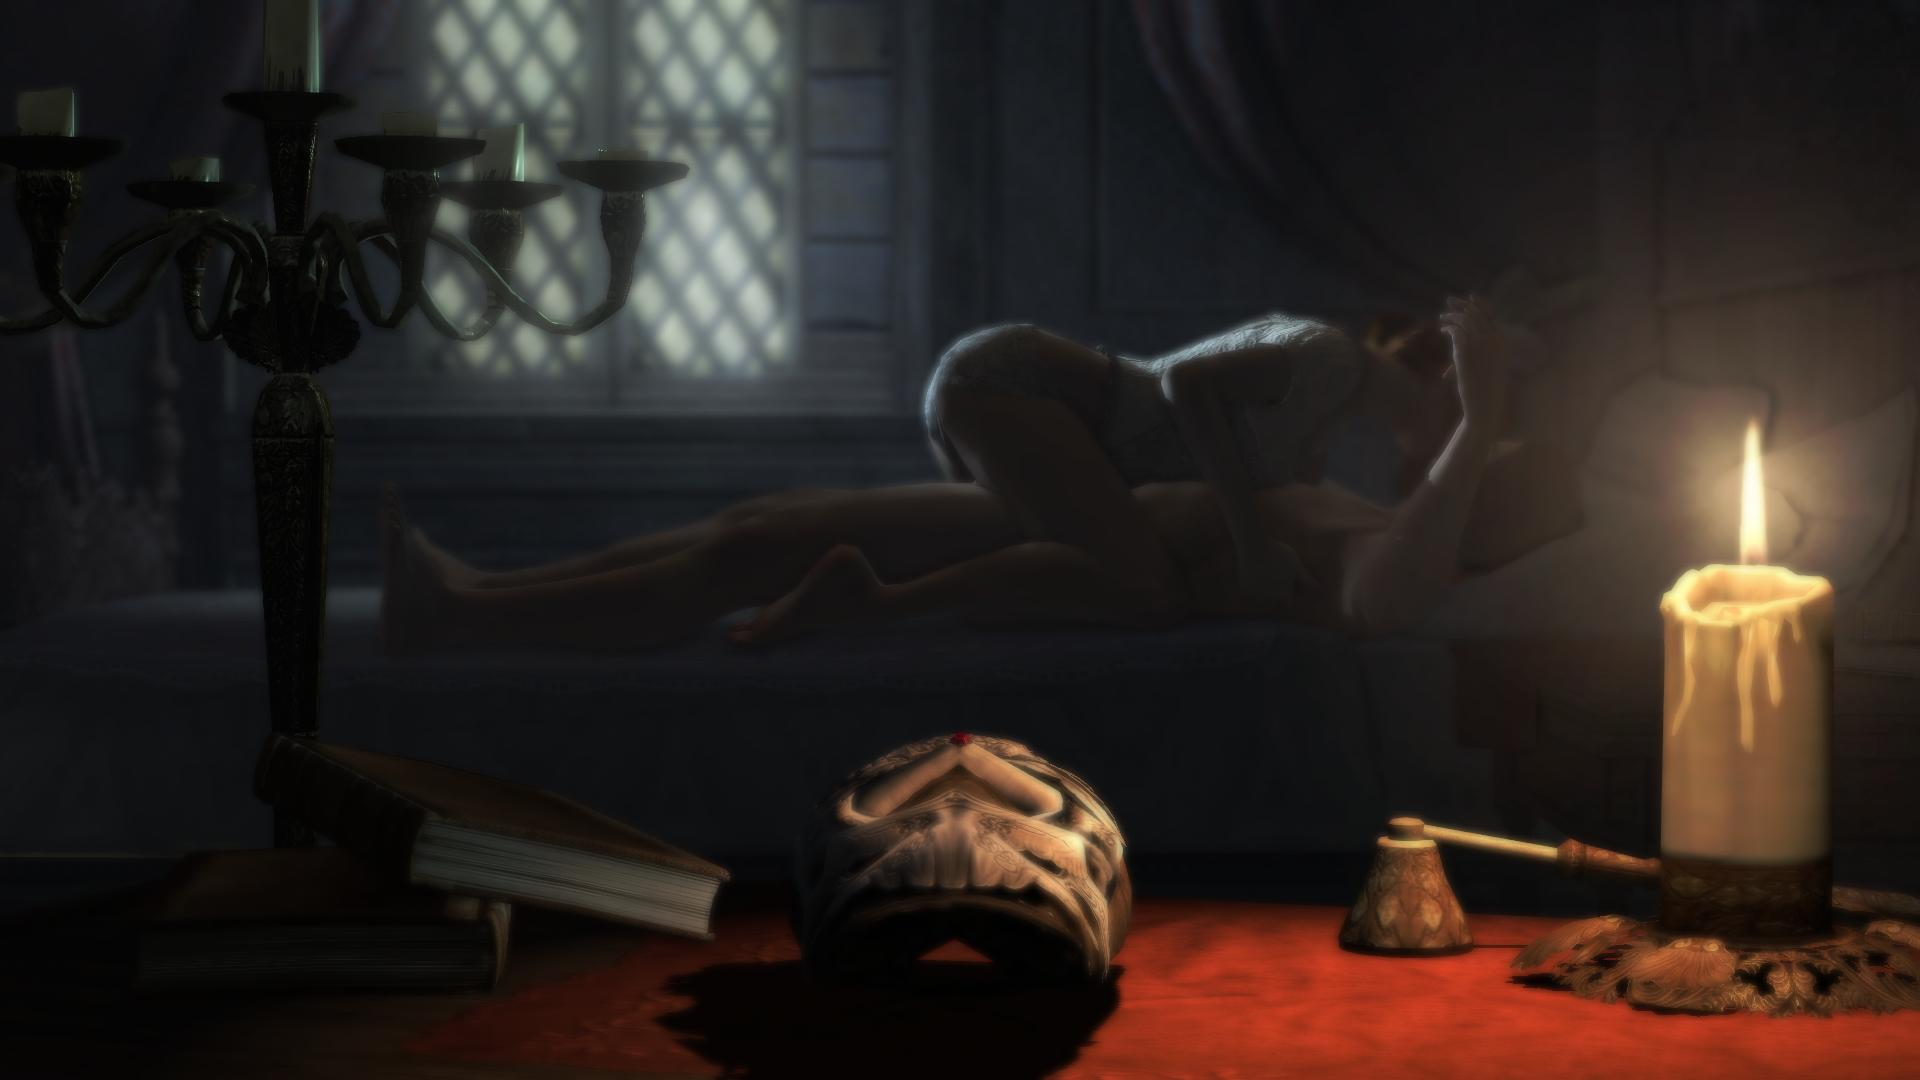 Assassin's creed brotherhood xxx gif nude pics